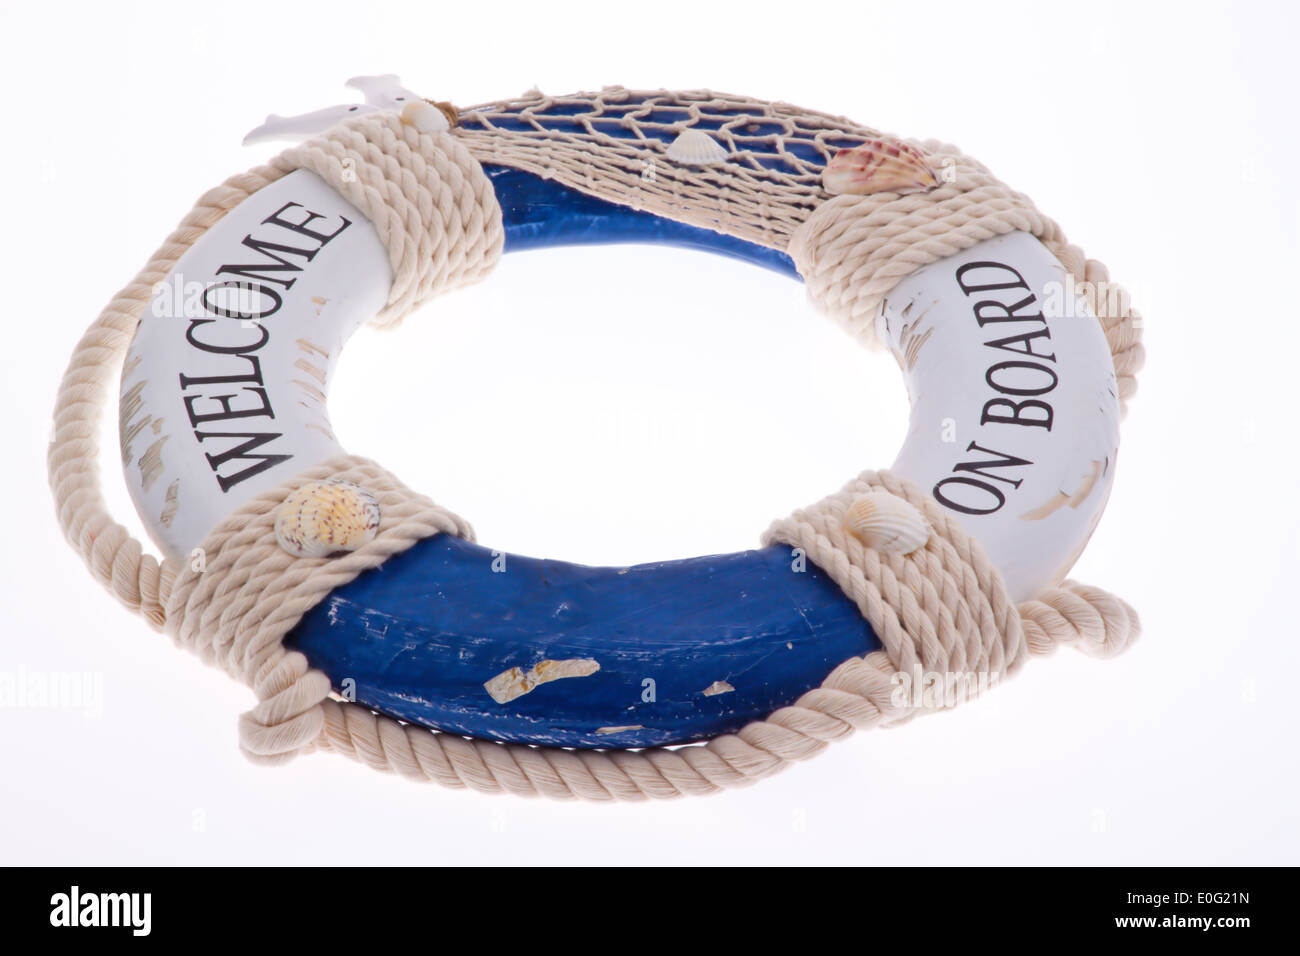 Life preserver, isolated before wei ? ?em background, Rettungsring, isoliert vor weißem Hintergrund - Stock Image